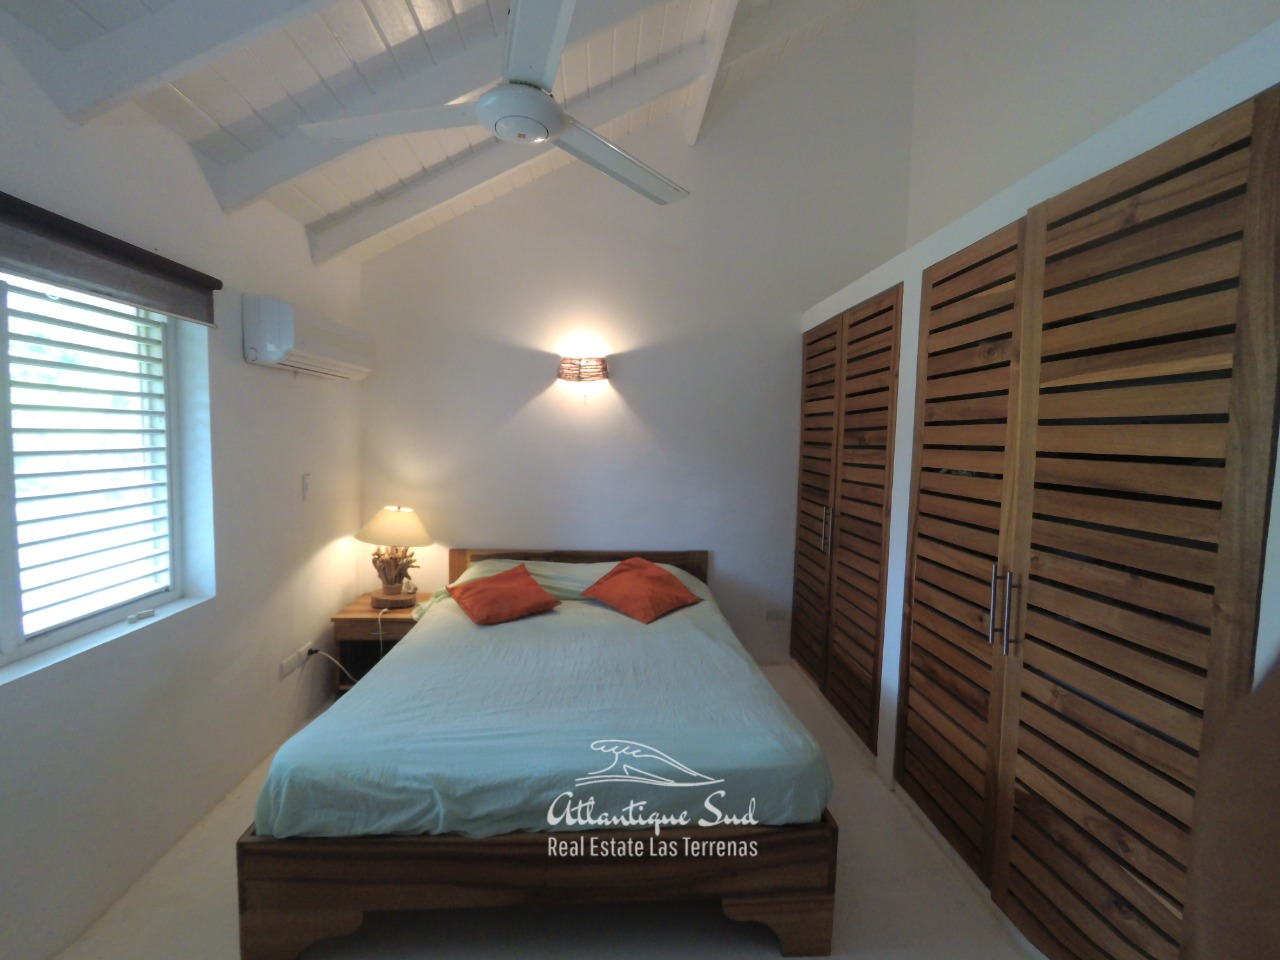 Villa for sale steps from the beach in las terrenas 5.jpeg